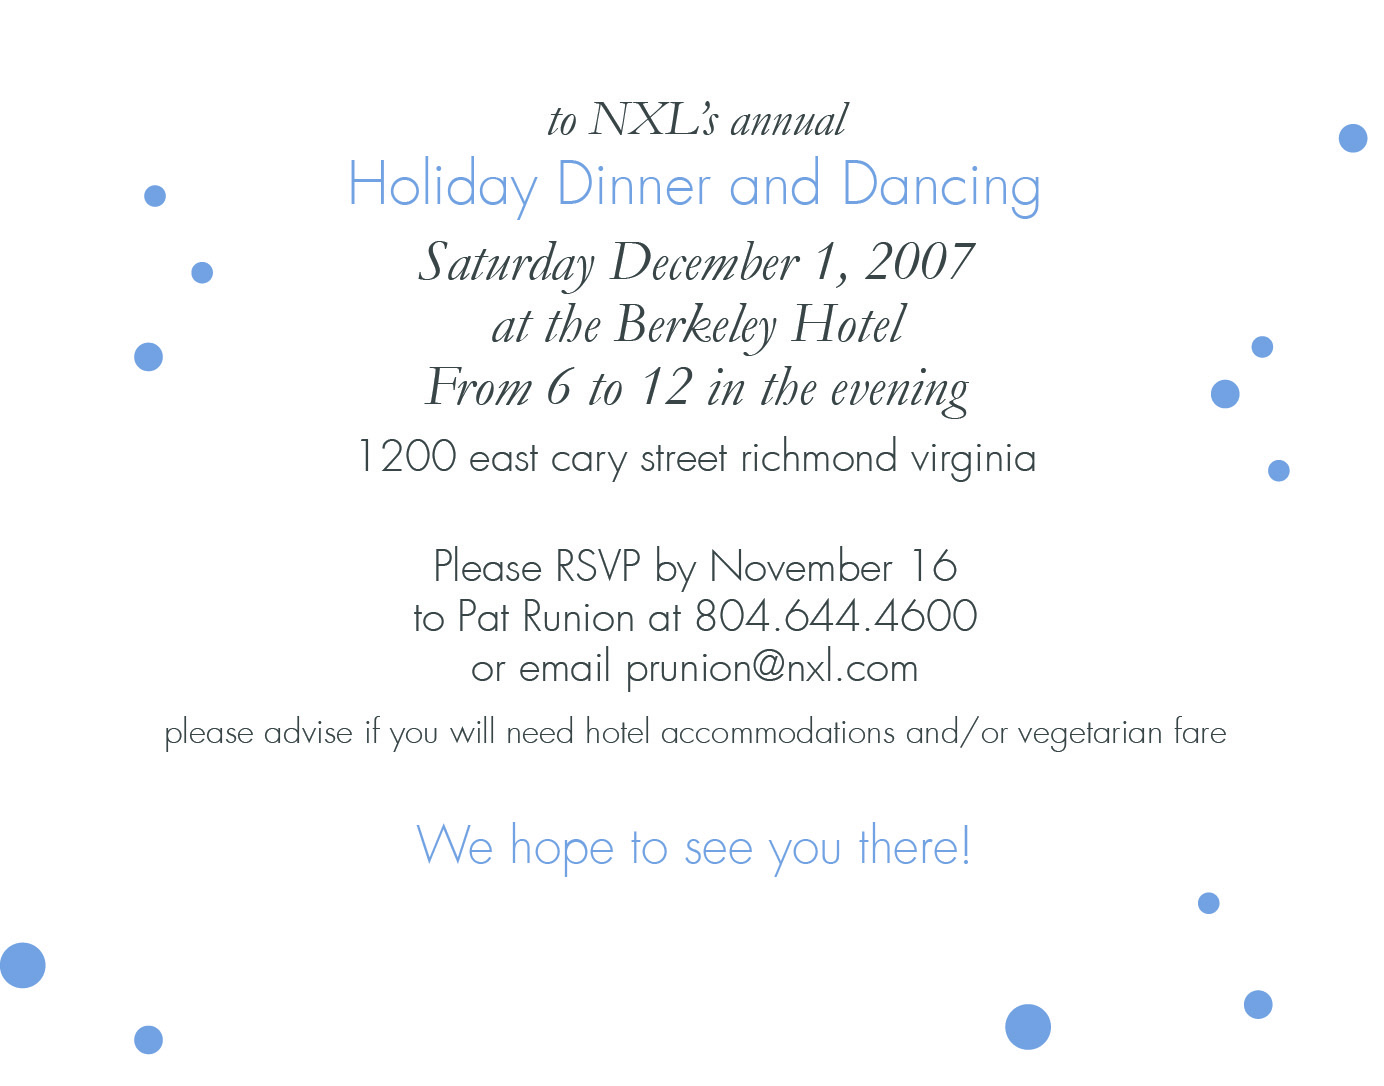 Email Party Invitations Email Party Invitations For The